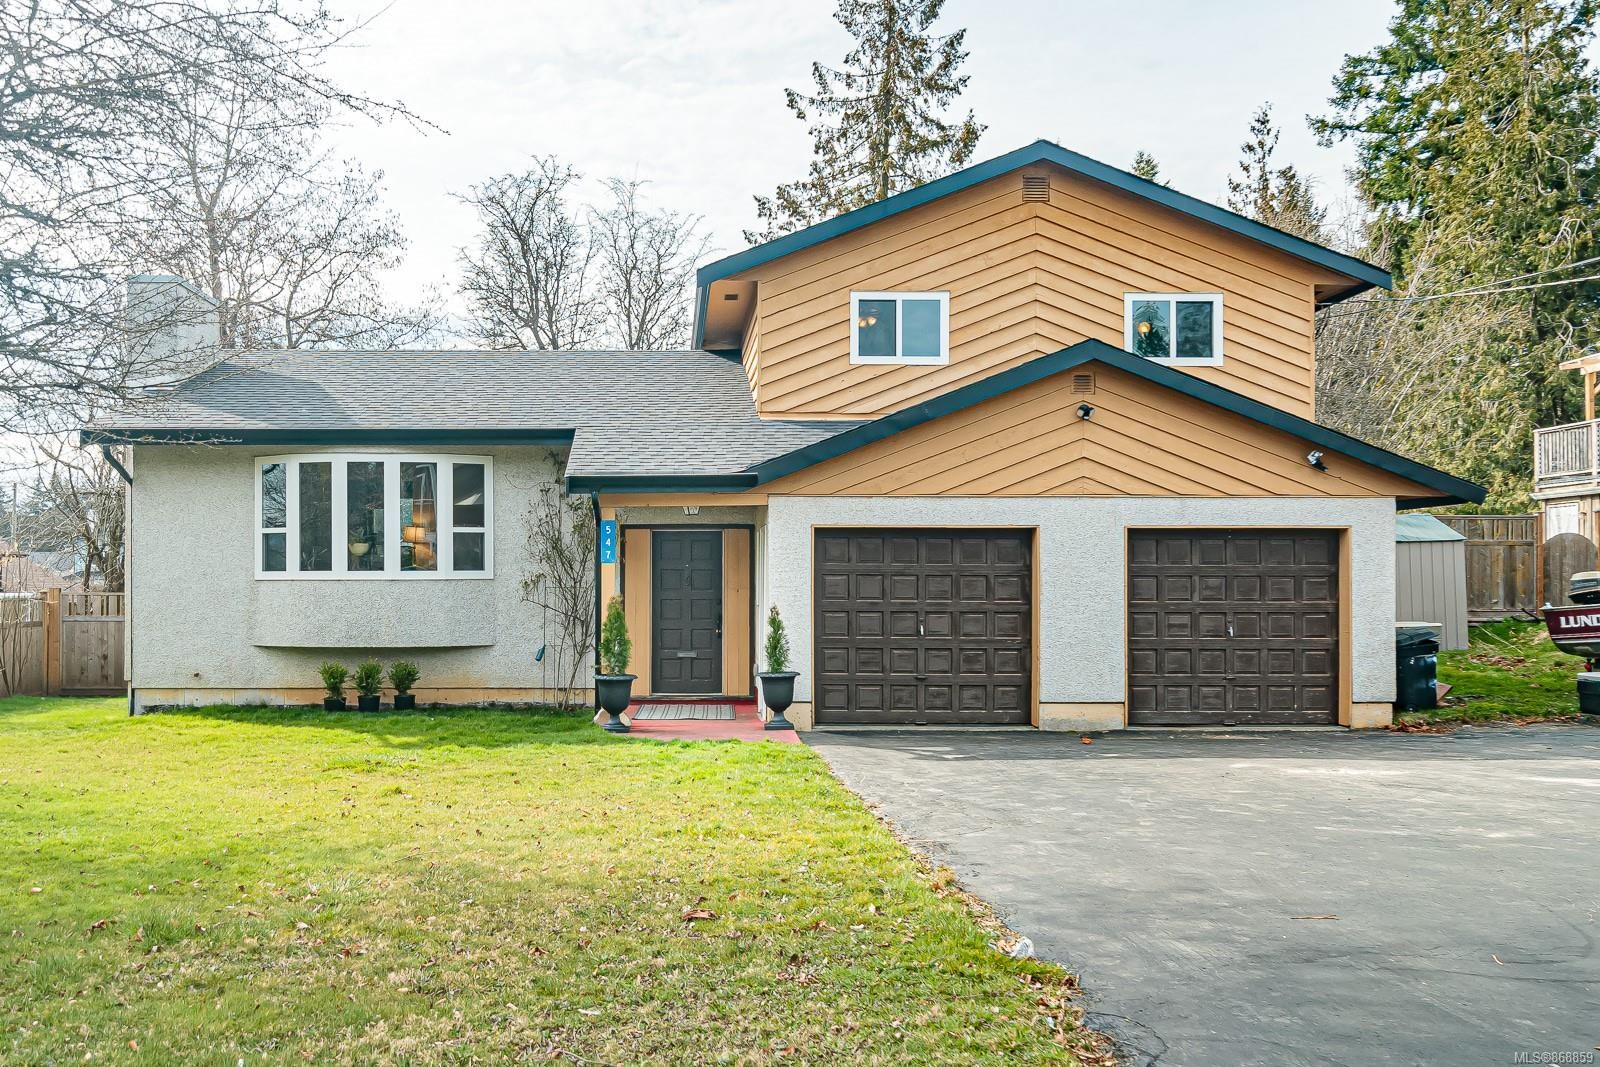 Main Photo: 547 Linshart Rd in : CV Comox (Town of) House for sale (Comox Valley)  : MLS®# 868859